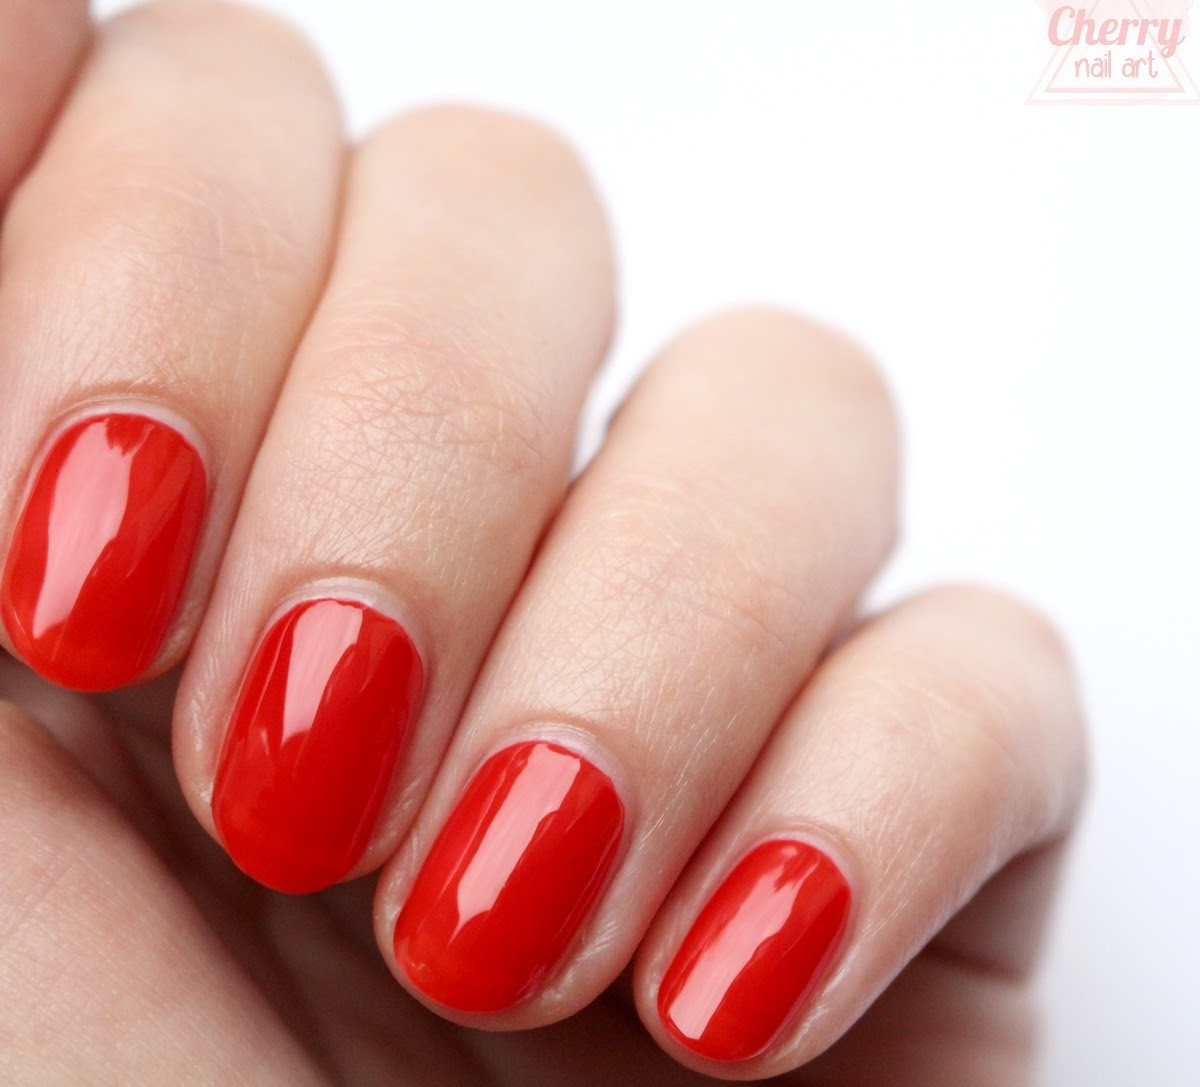 vernis-à-ongles-aromazone-rouge-passion